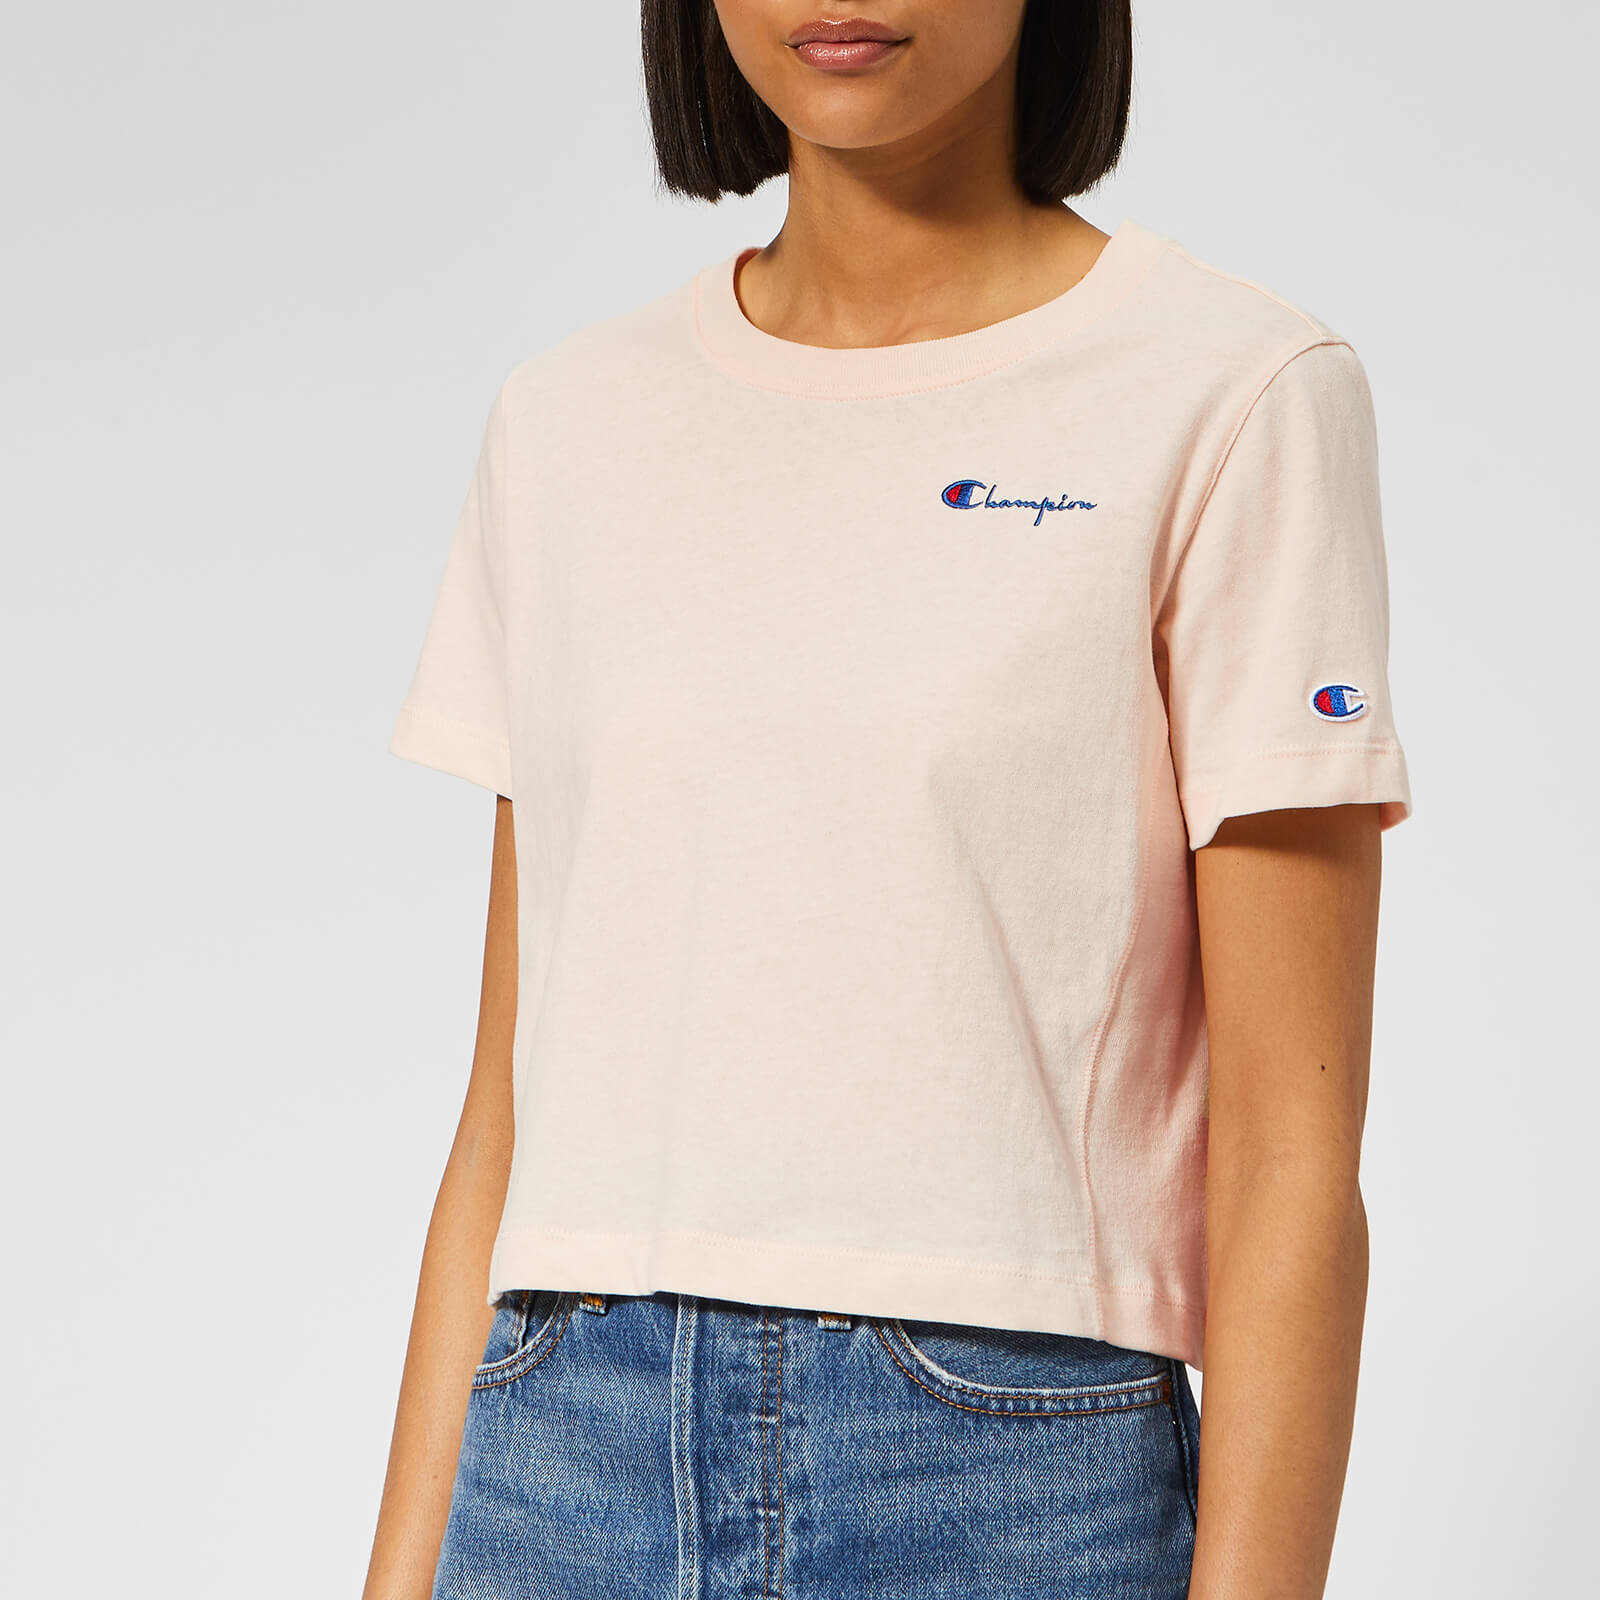 ec621b38b293 Champion Women's Cropped Short Sleeve T-Shirt - Pink Womens Clothing |  TheHut.com